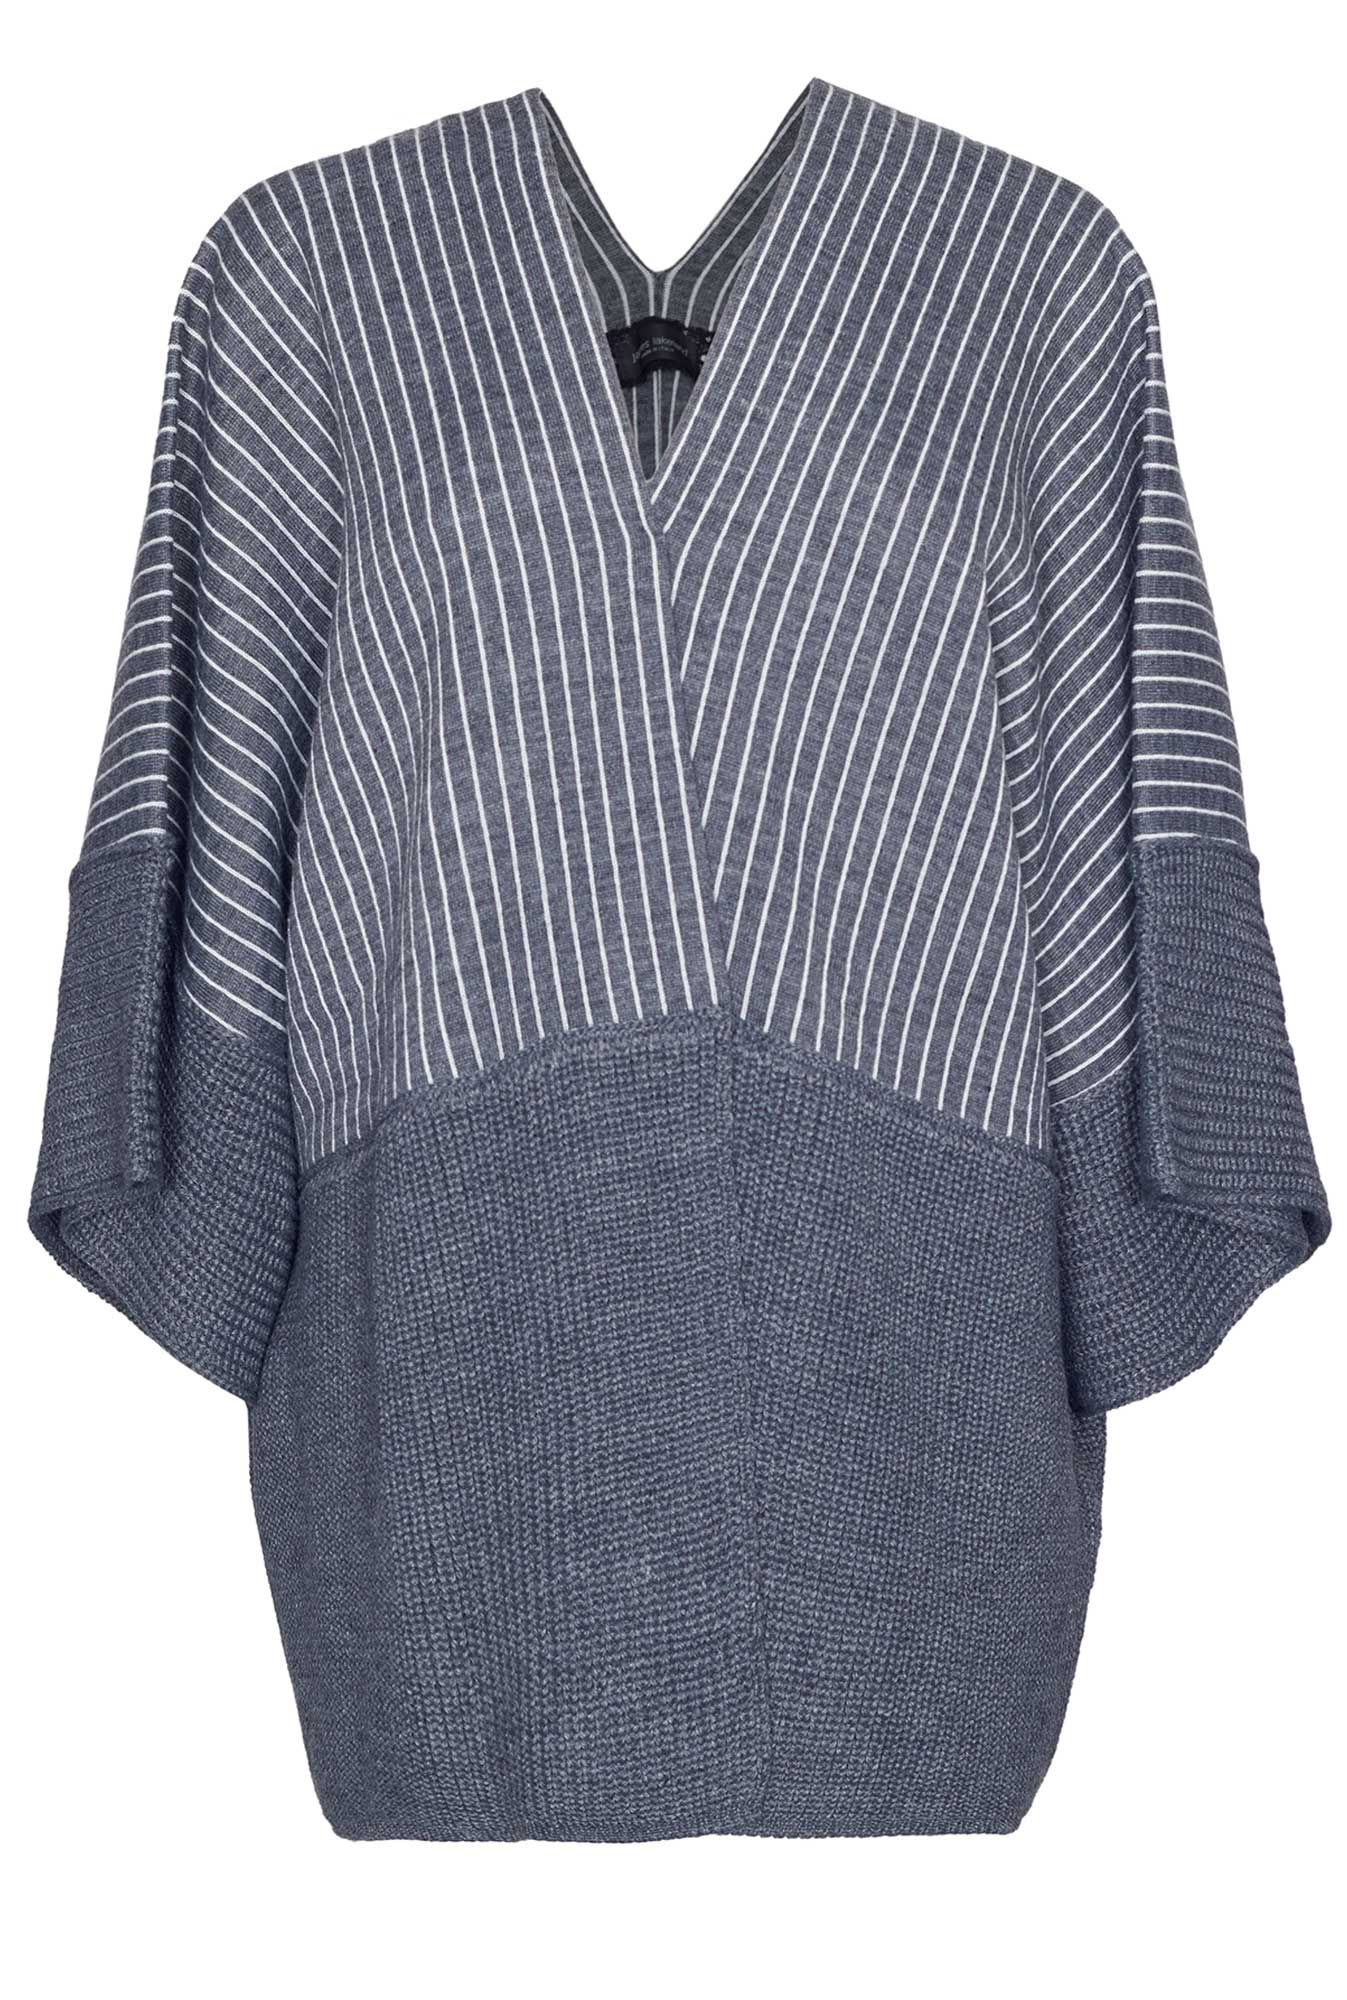 James Lakeland Stripe Knit Cape, Grey